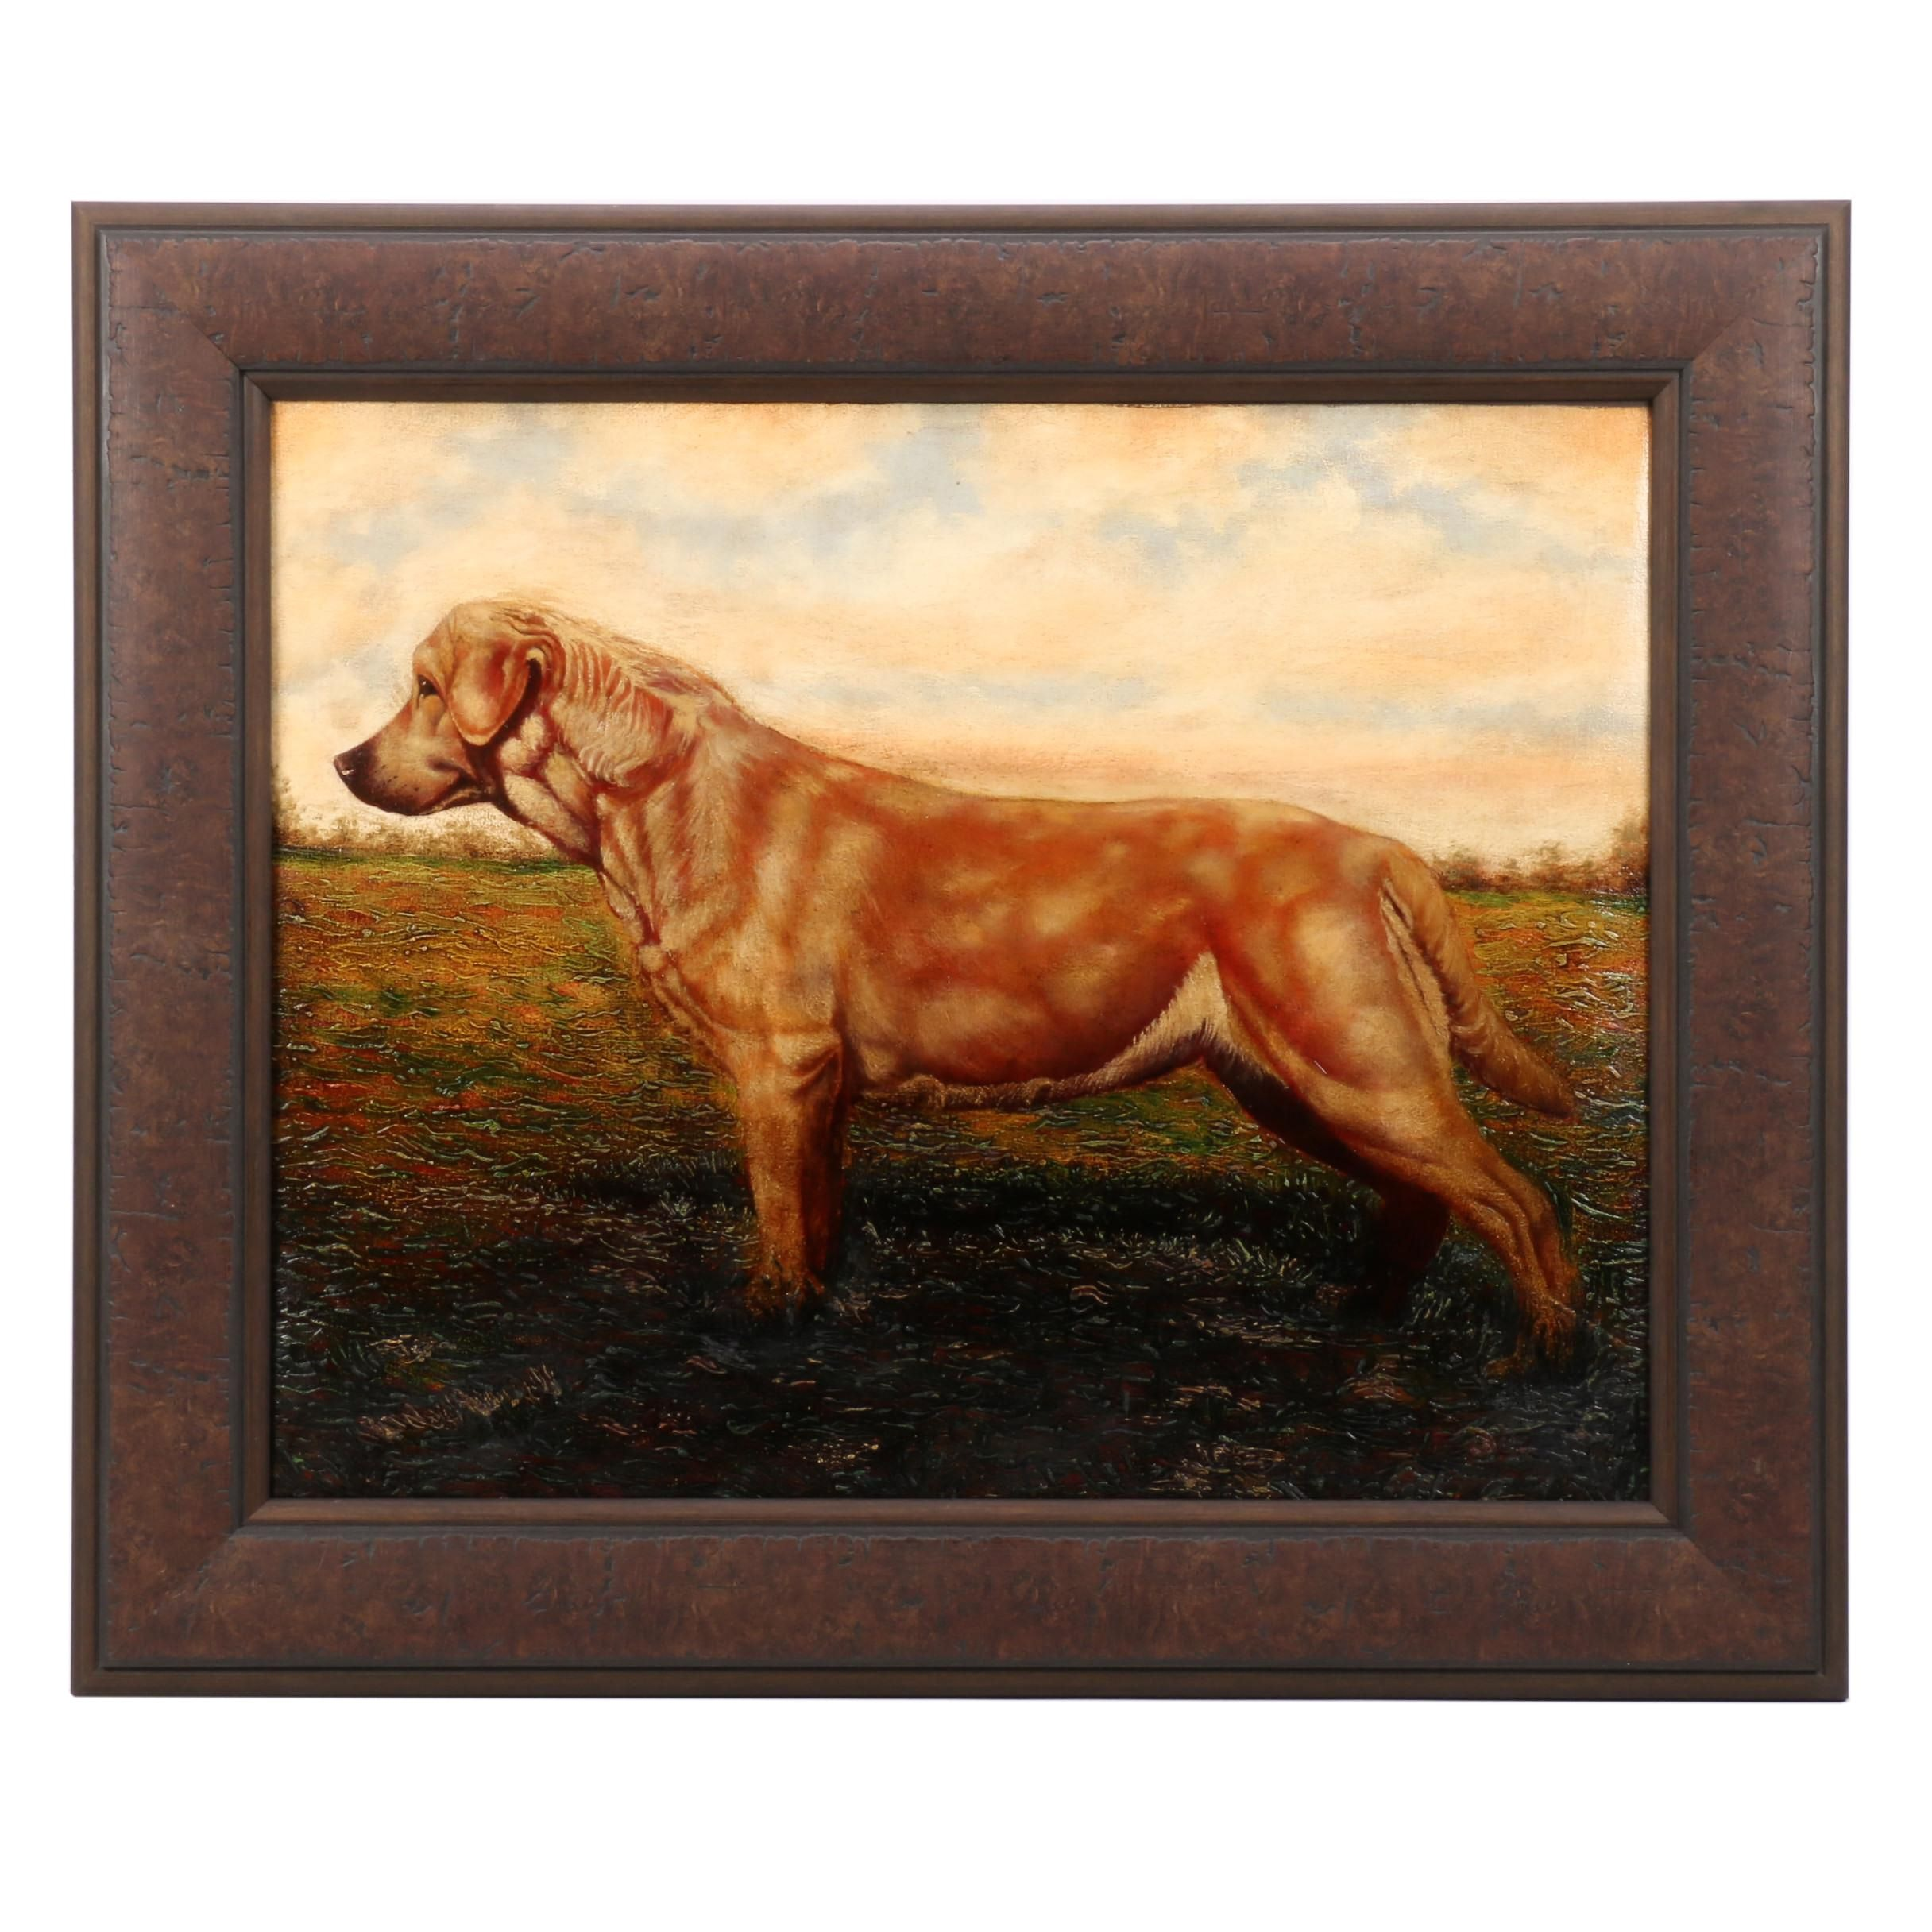 Raez Contemporary Oil Painting of a Dog